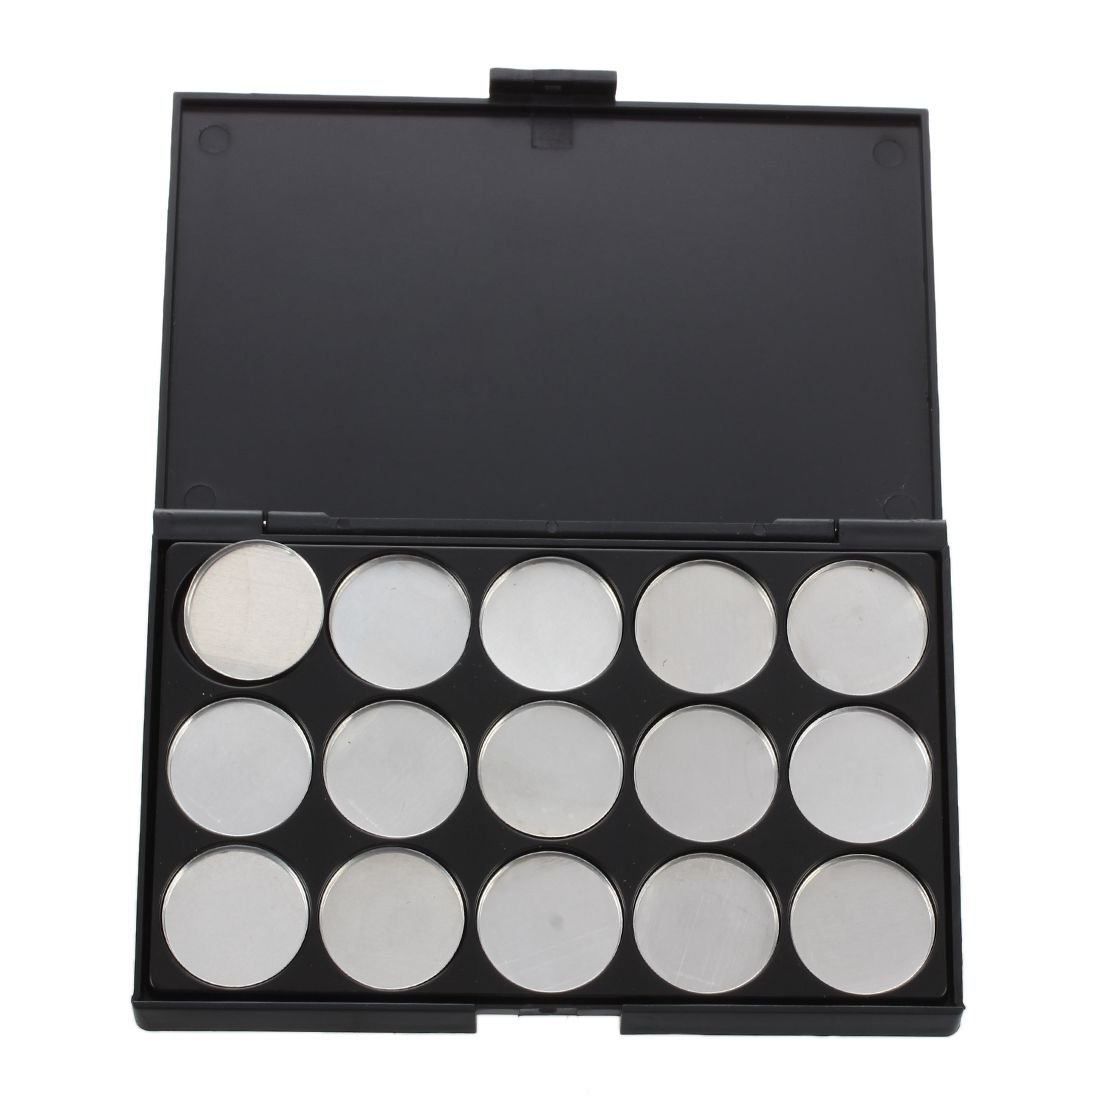 6176bc749ad0 Moligh doll Makeup Empty 15 pcs Aluminium Eyeshadow Pans with Palette